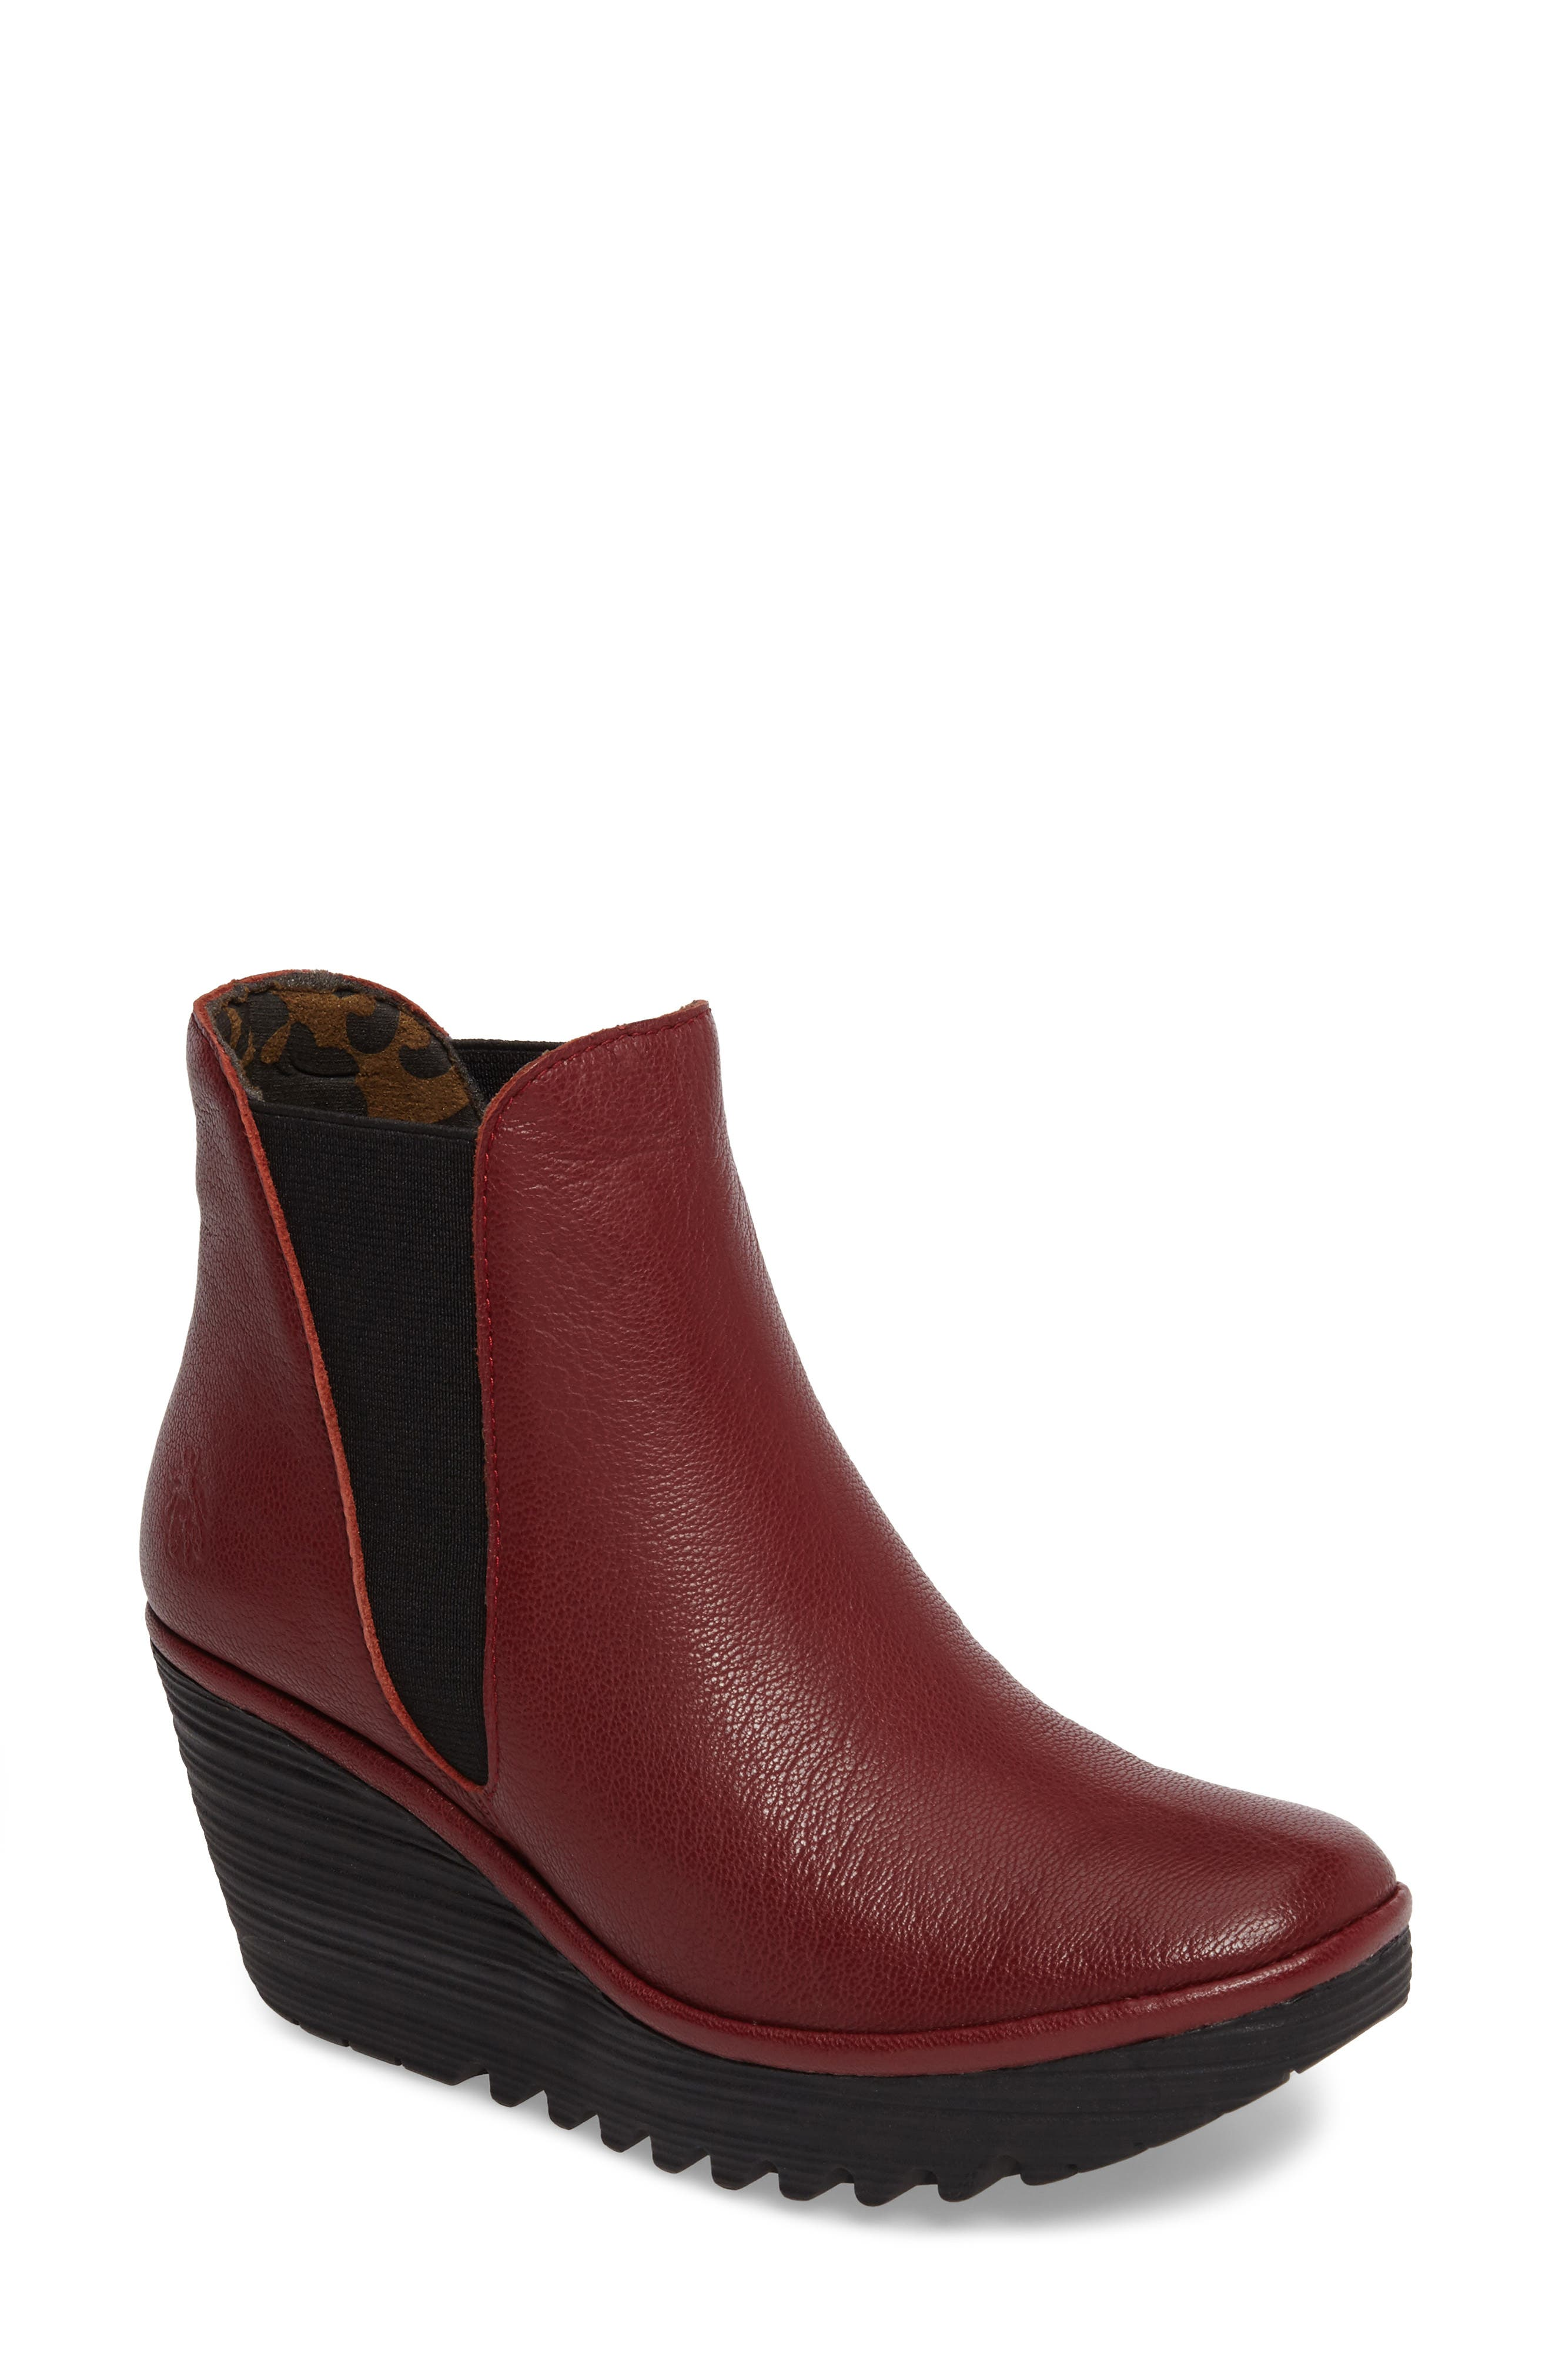 Yoss Wedge Bootie,                             Main thumbnail 1, color,                             Cordoba Red Leather